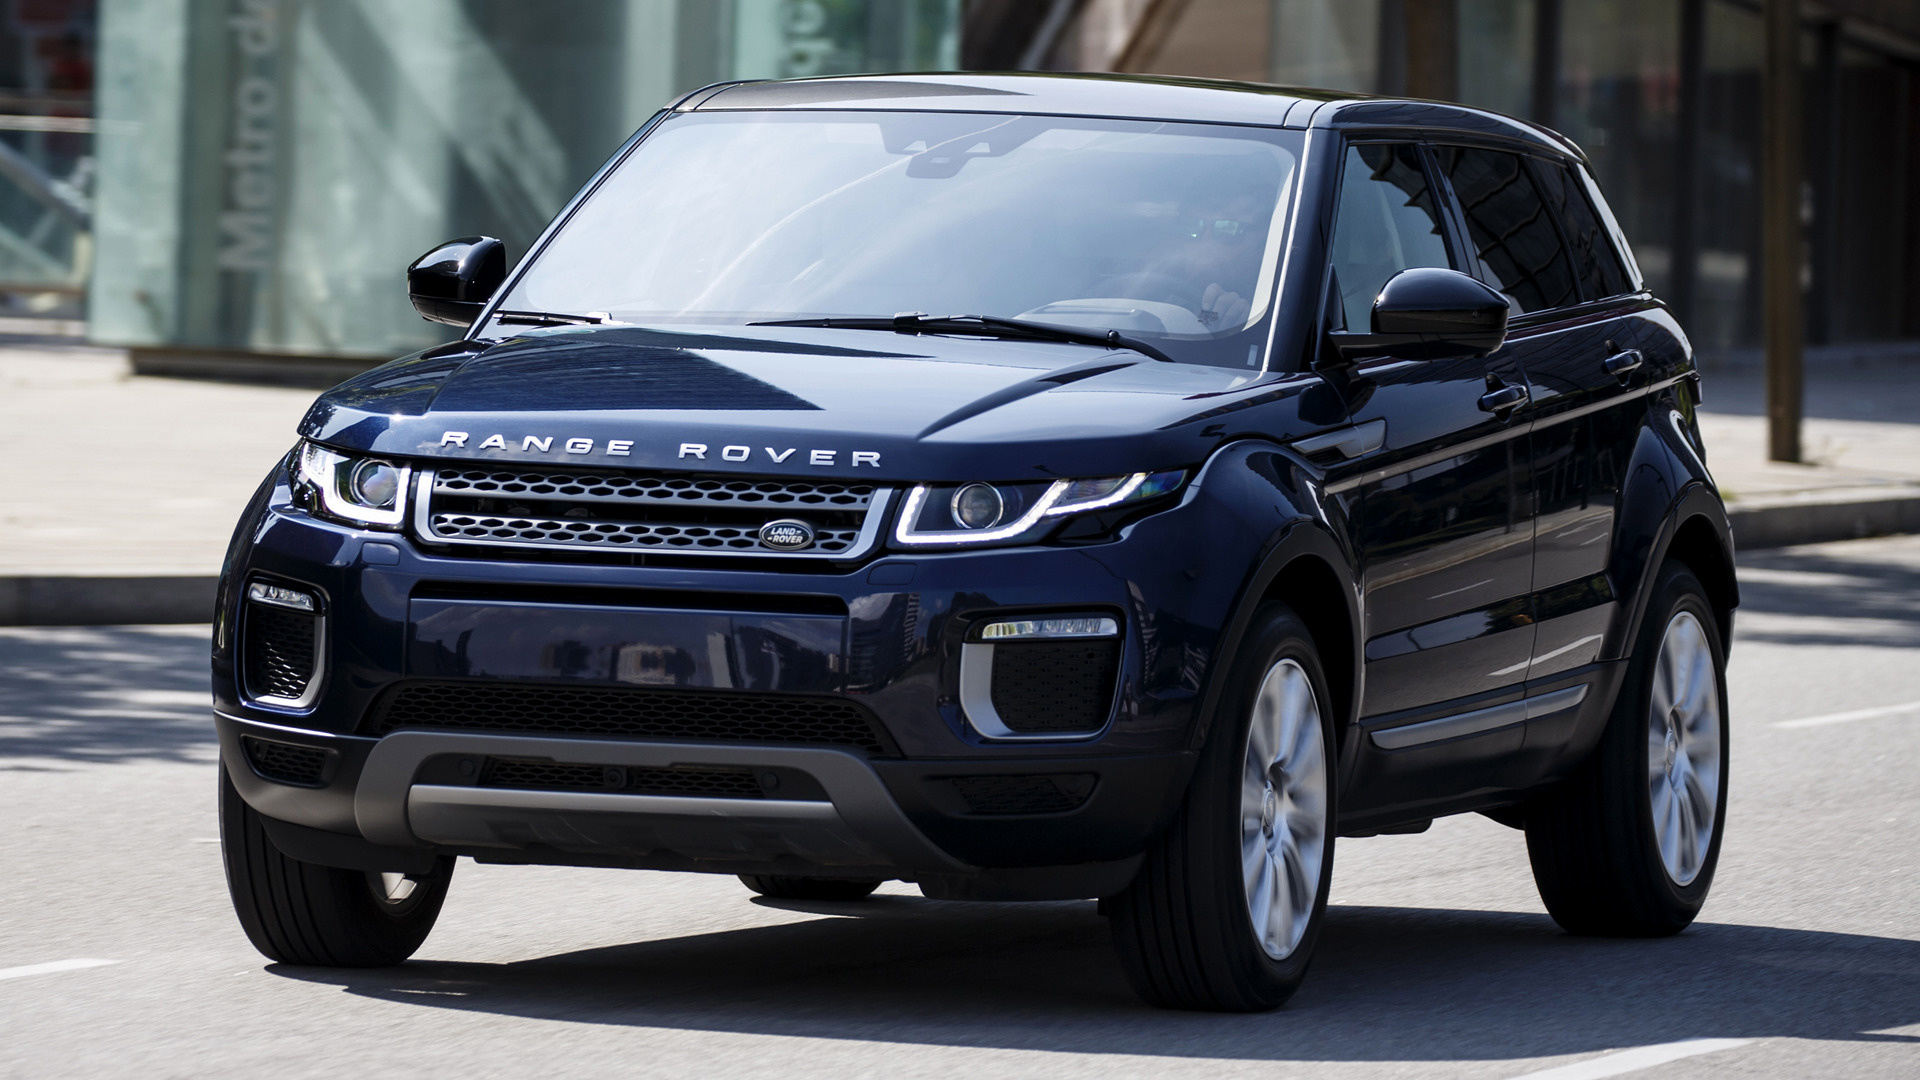 Range Rover Evoque (2015) Wallpapers And HD Images